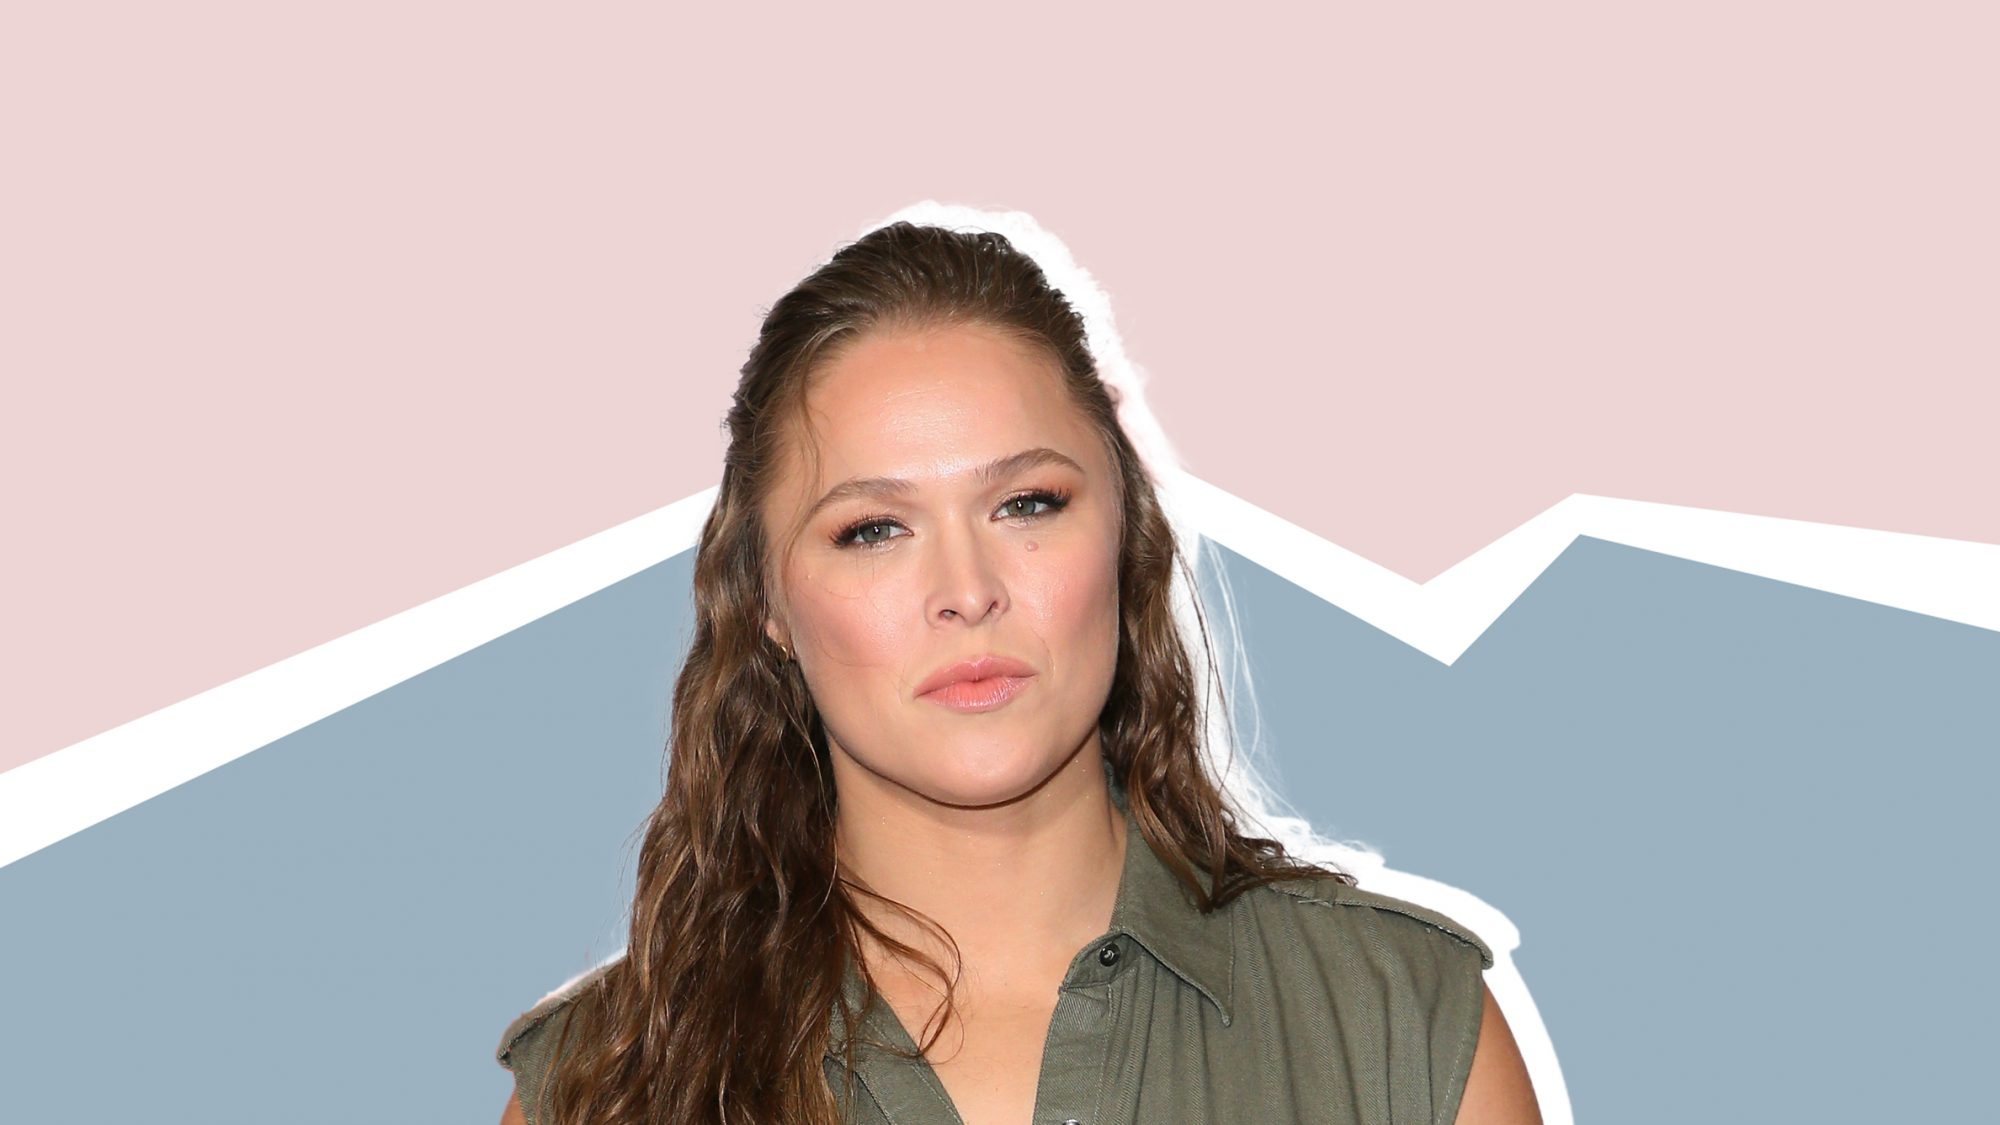 Ronda Rousey's Middle Finger Almost Snapped In Two—See the Graphic Photo